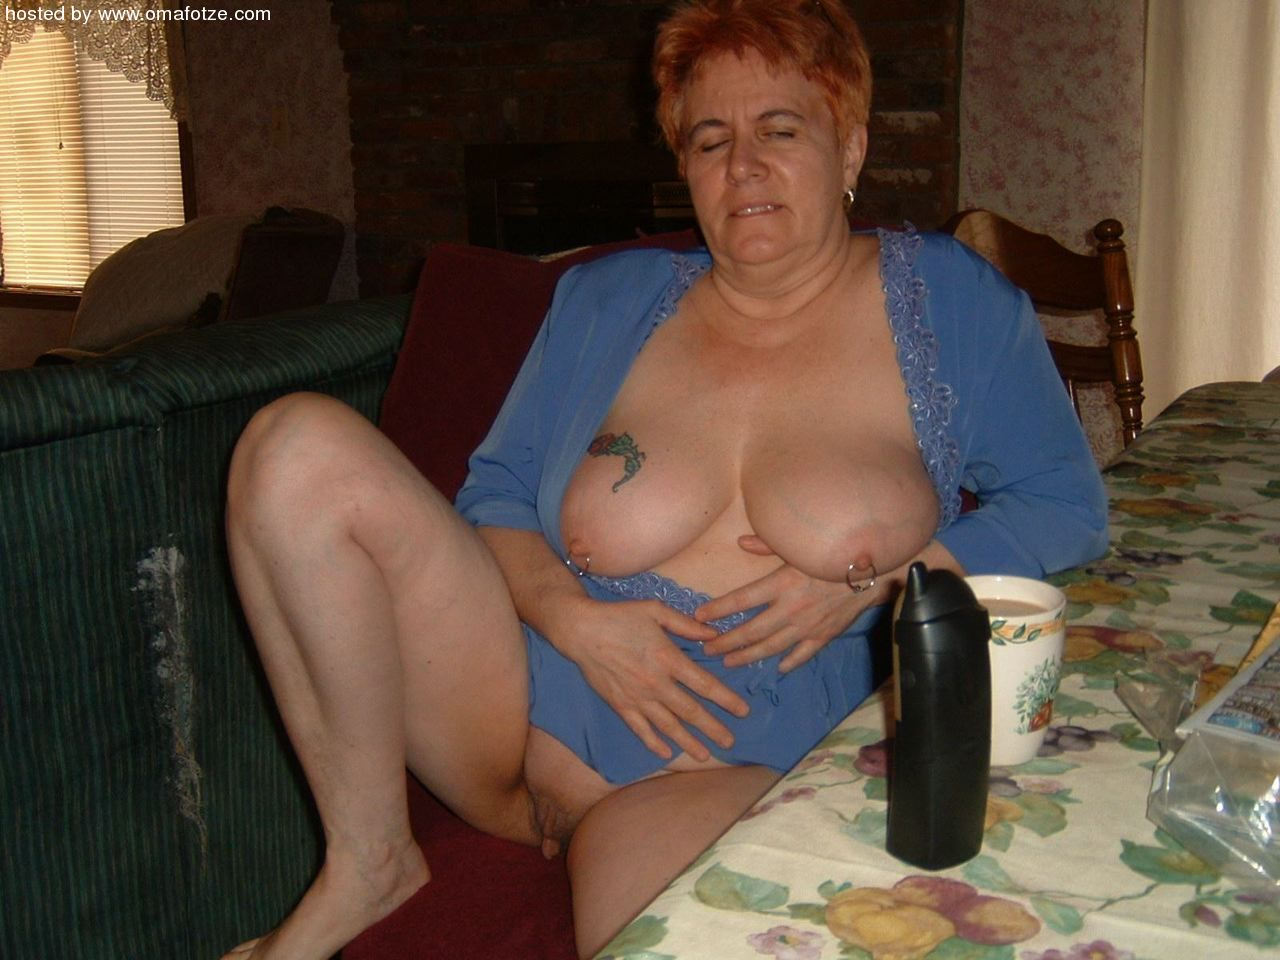 Horny amateur grannies are